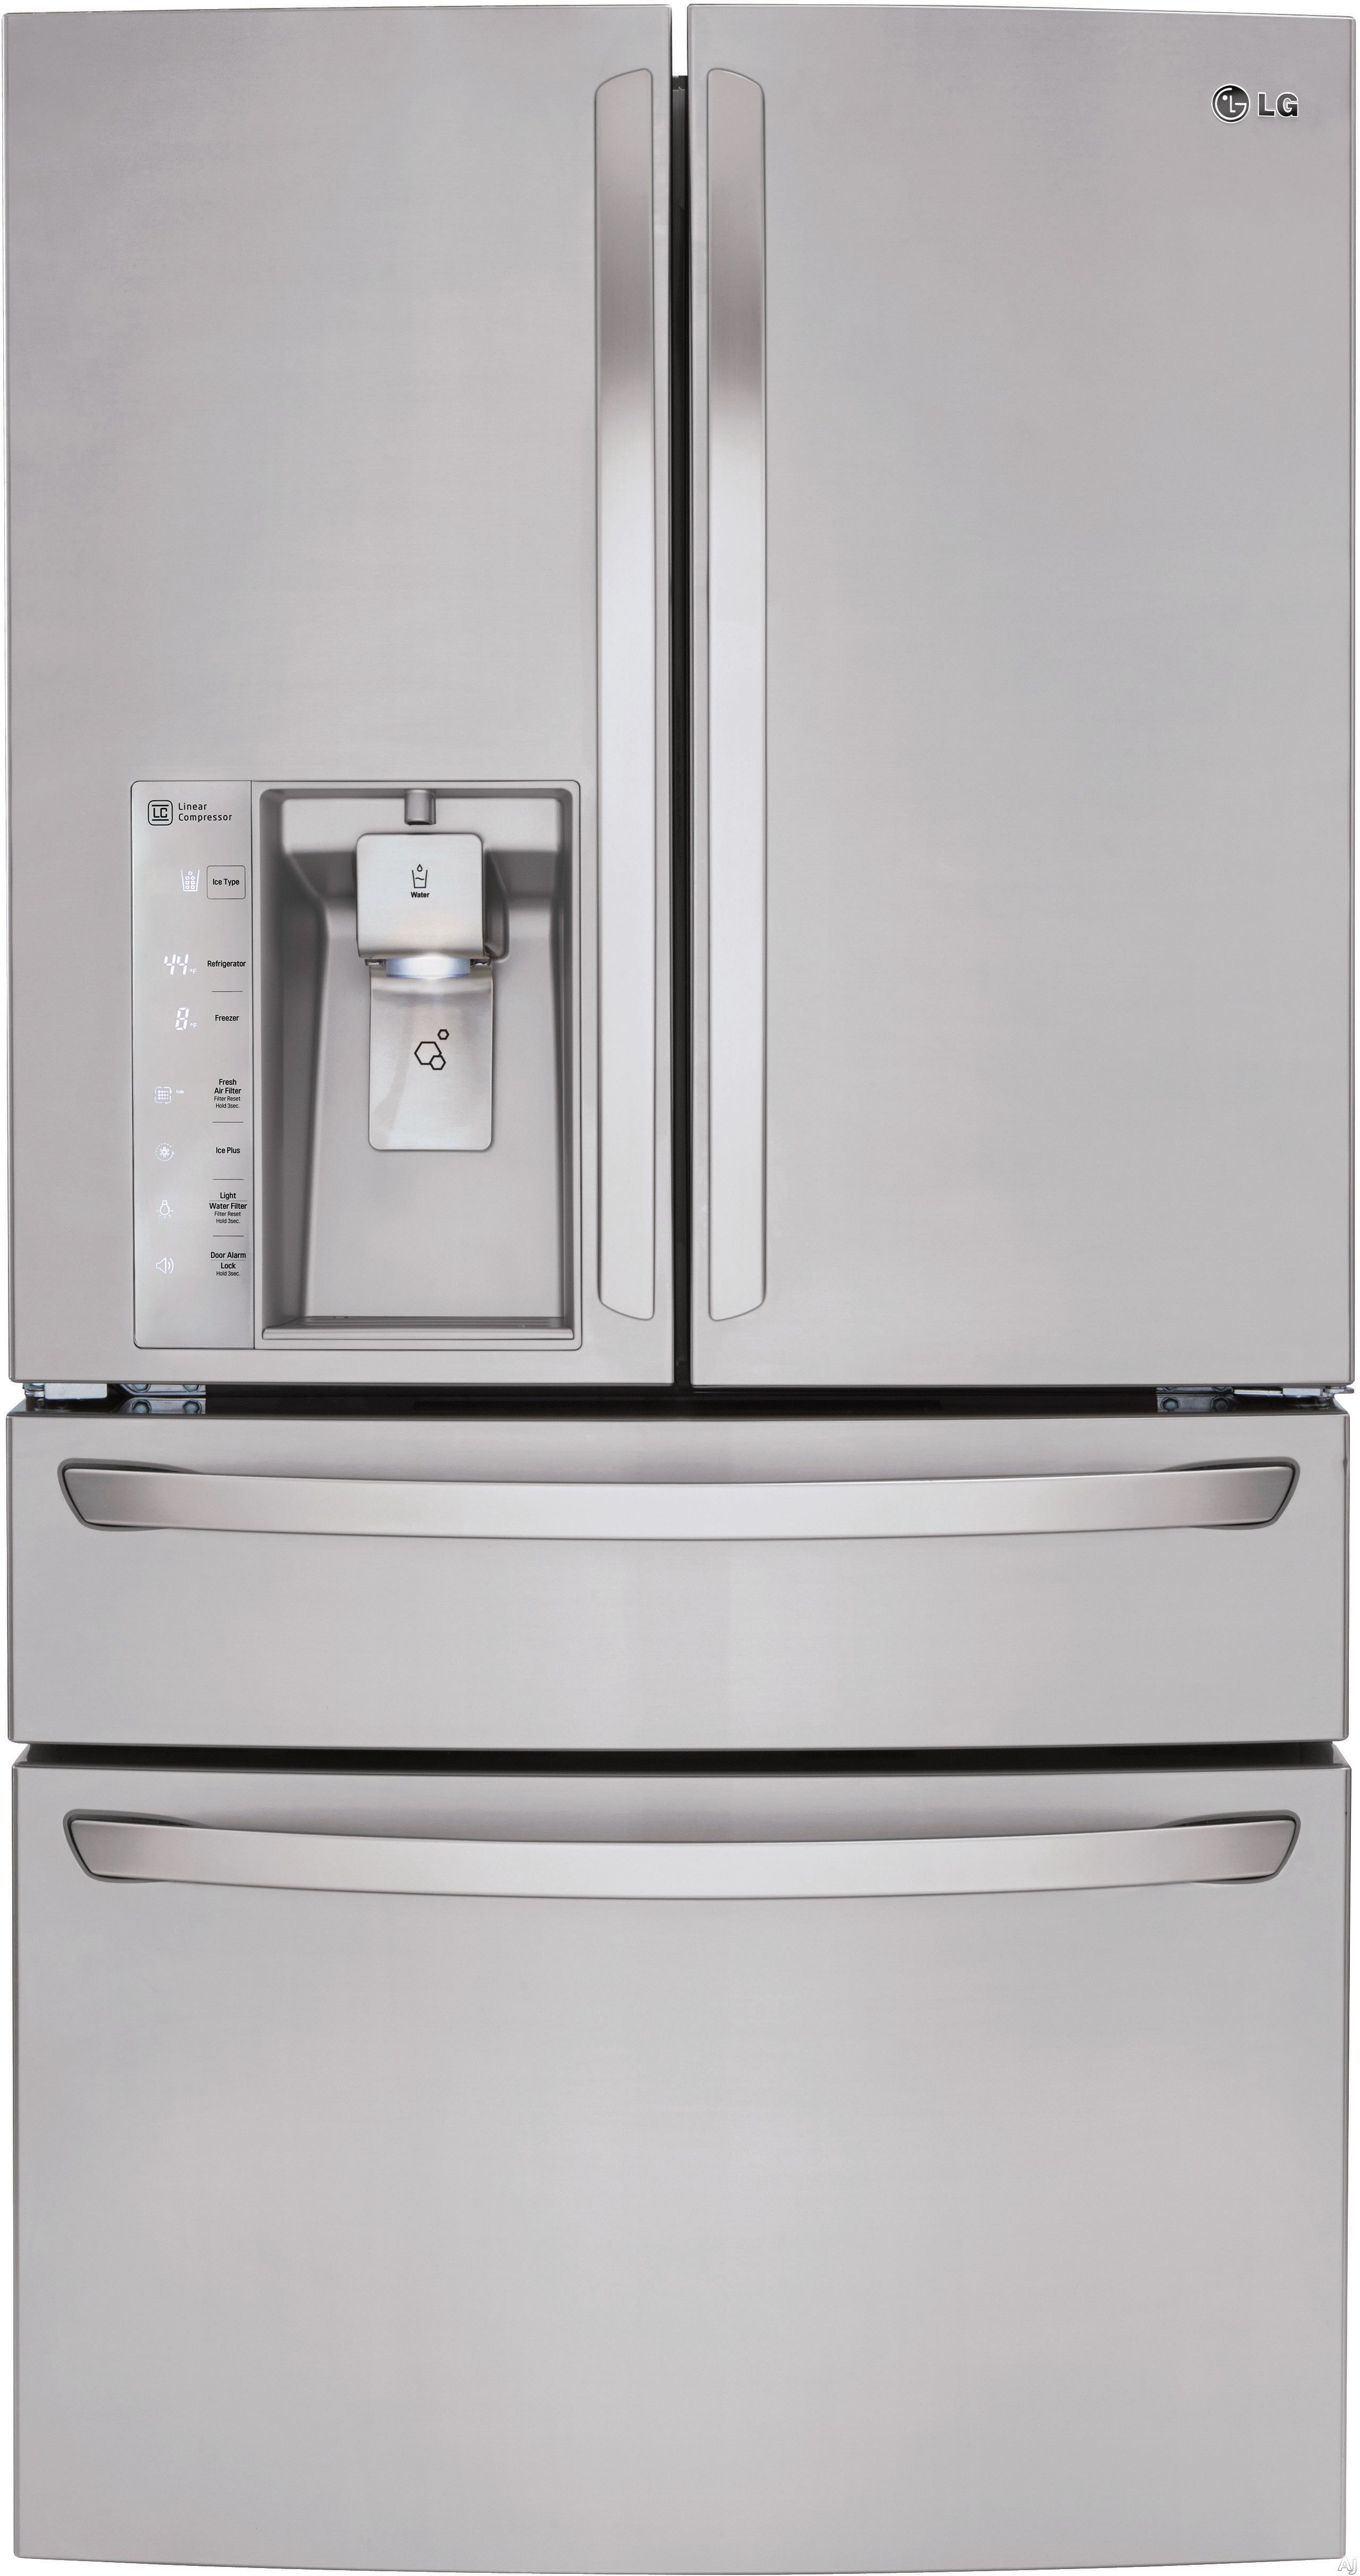 Lg Lmxs30746s 36 Inch French Door Refrigerator With 300 Cu Ft Ca